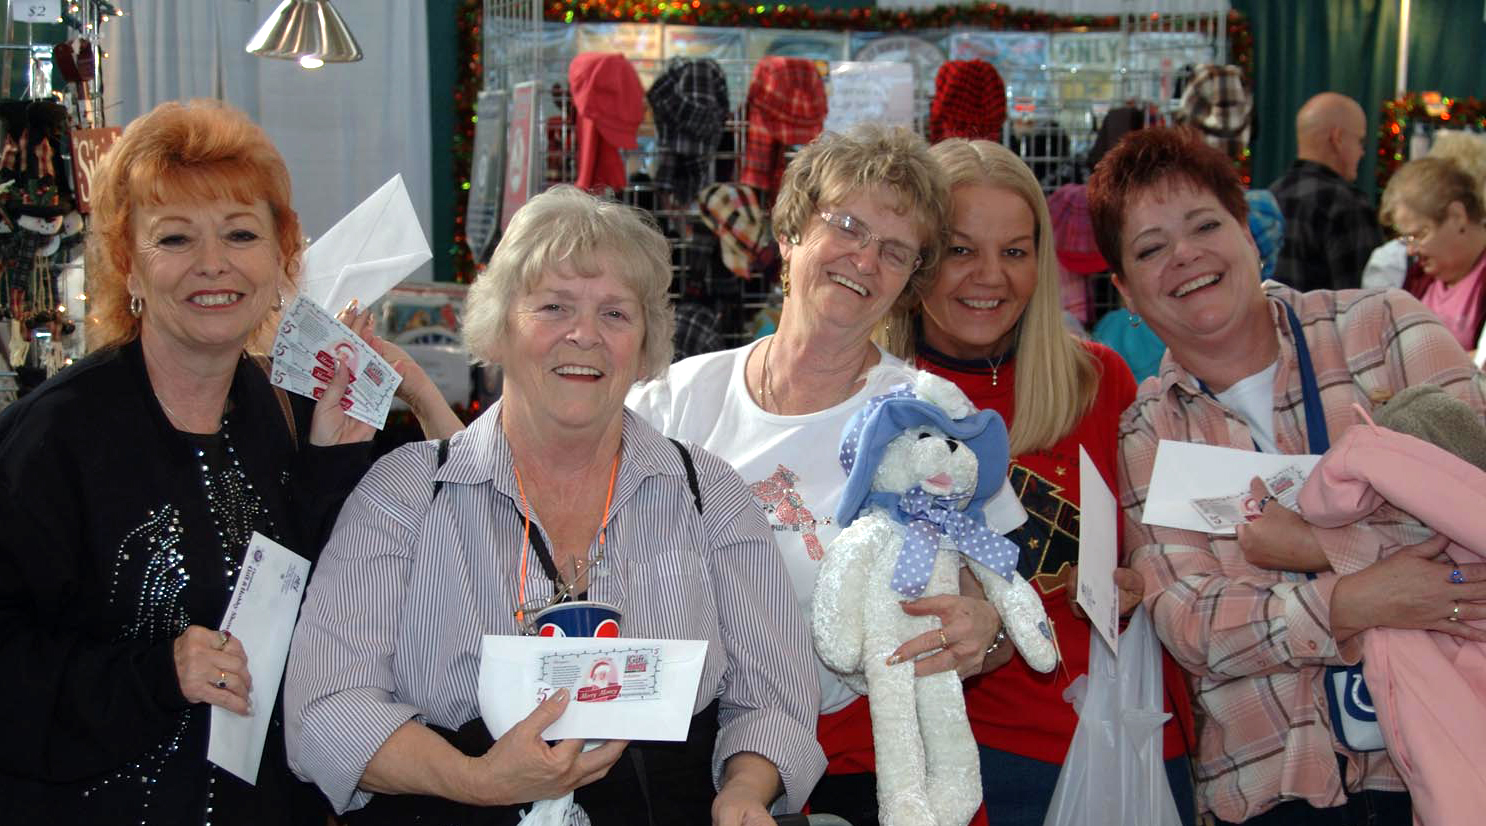 a group of ladies displaying holiday cheer at a previous christmas gift hobby show were awarded with merry money which serves as free money to use at any - Christmas Gift And Hobby Show